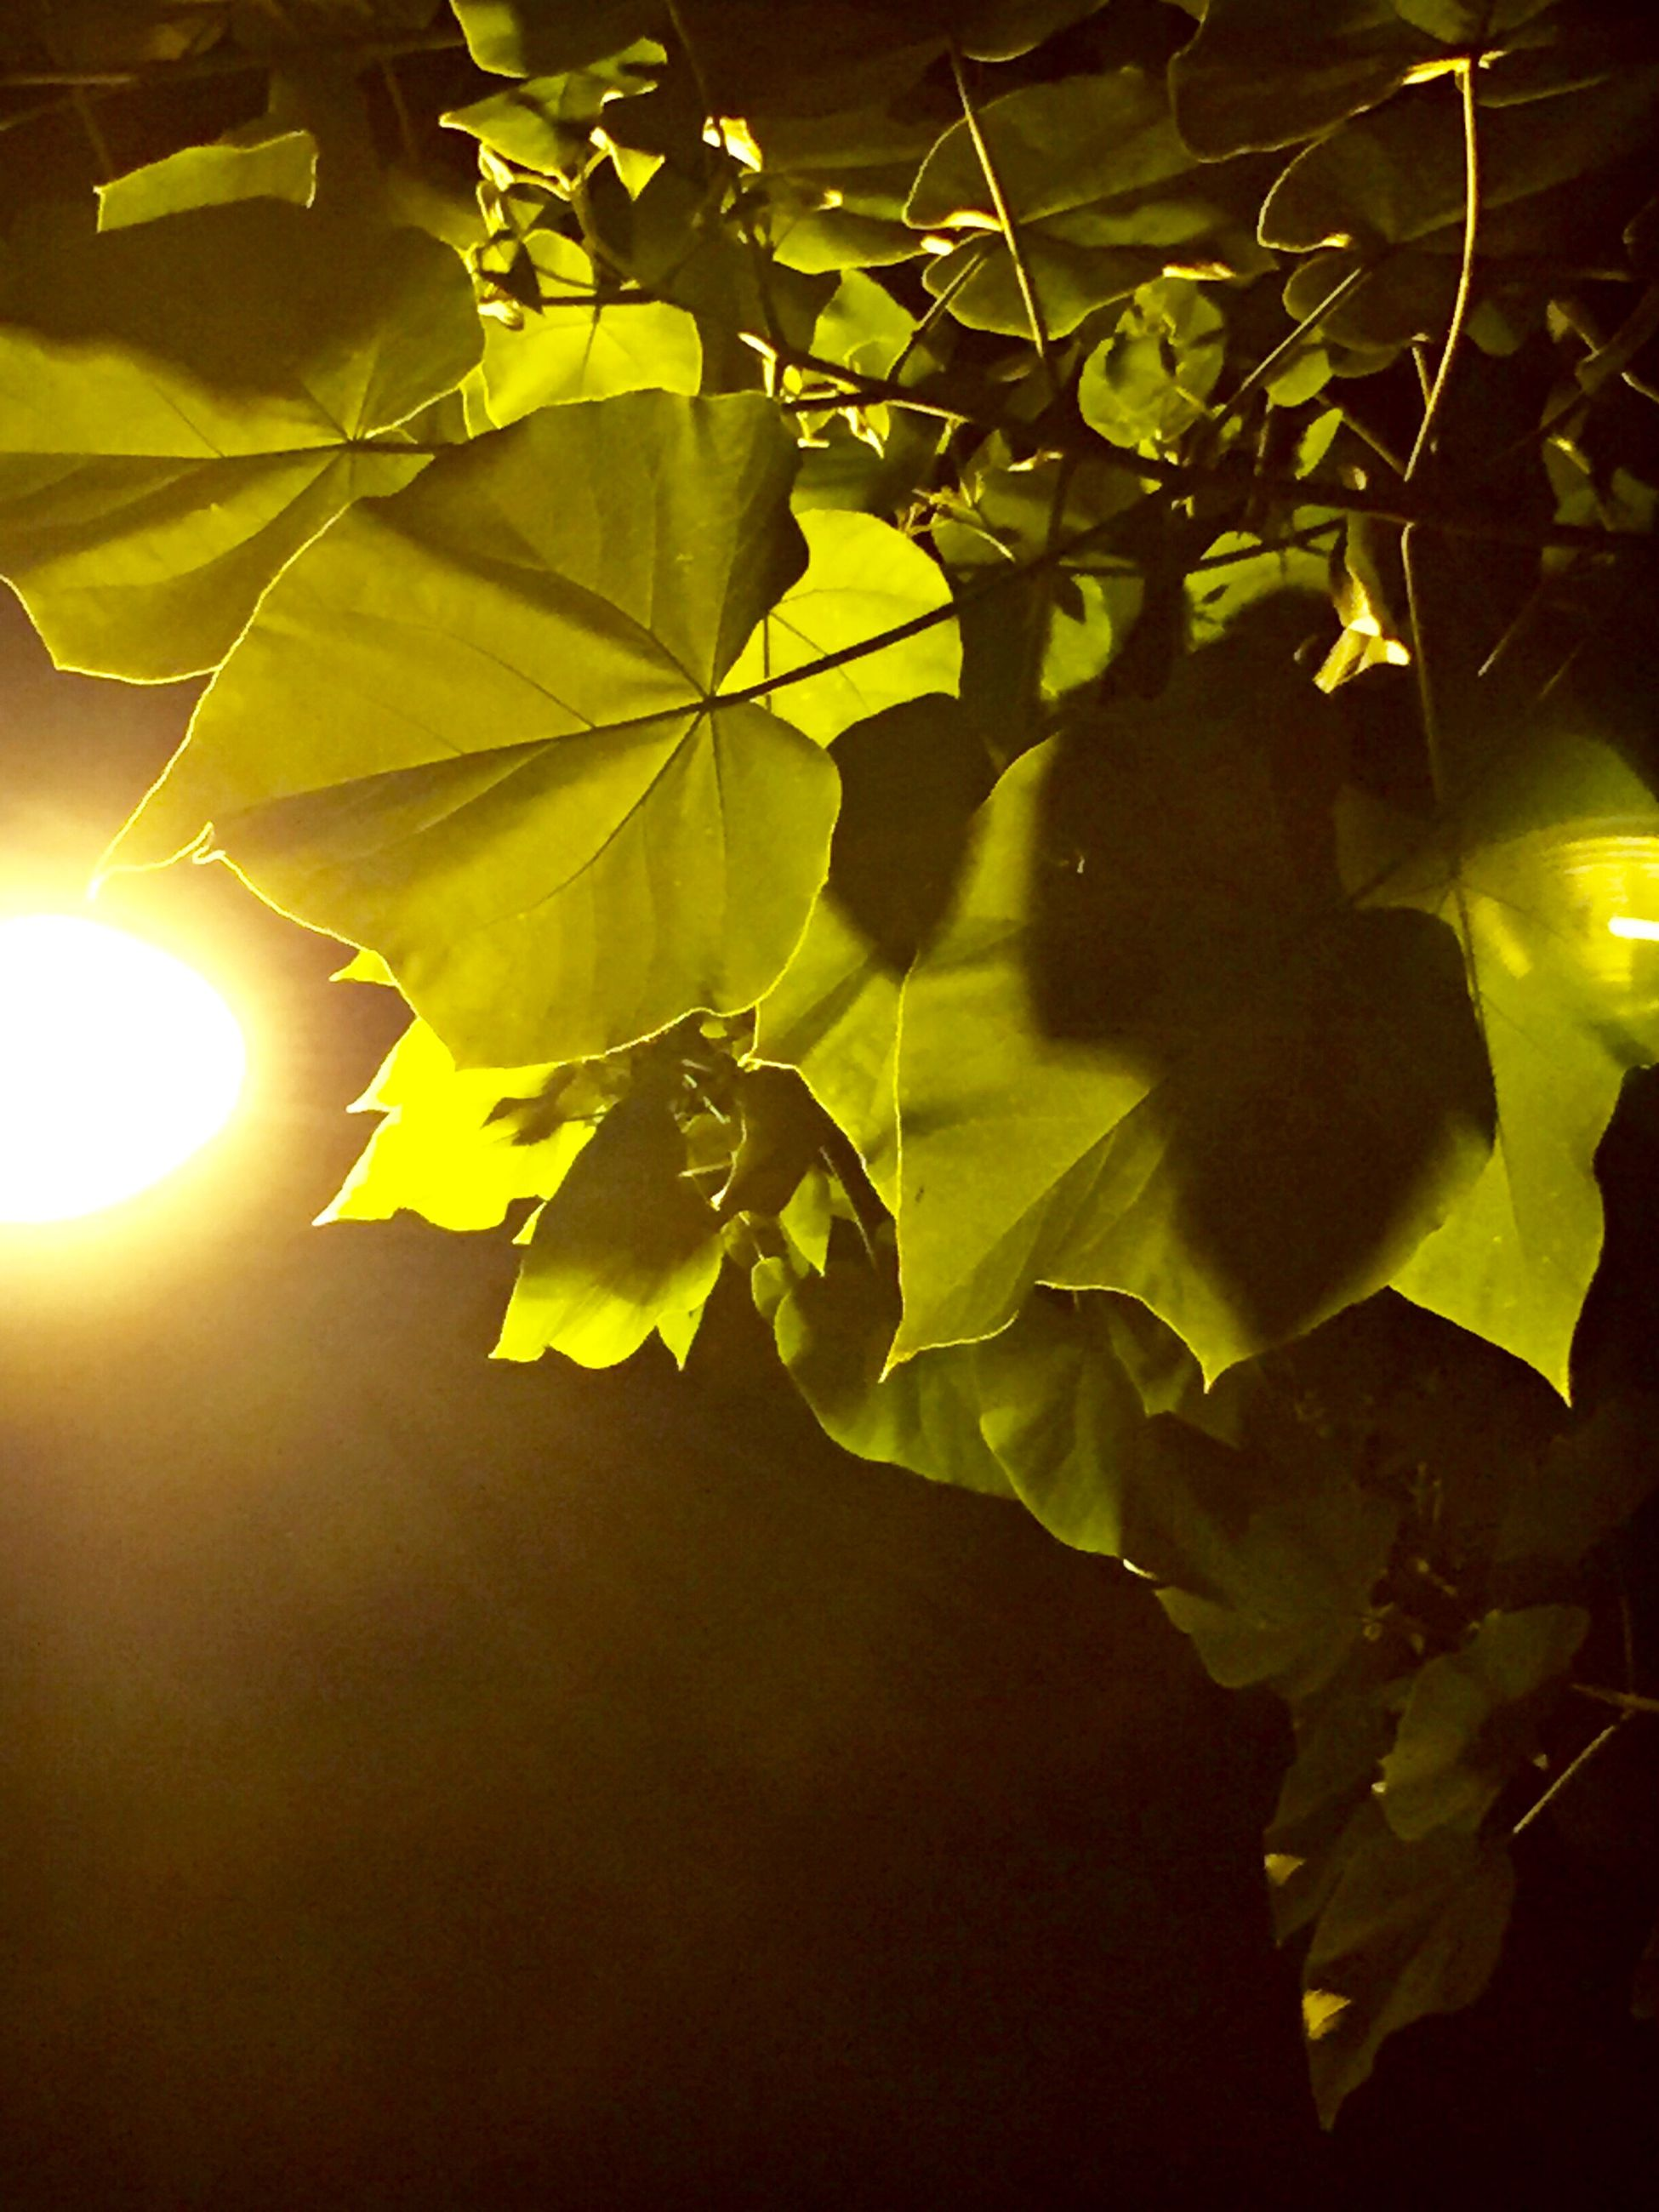 leaf, tree, branch, growth, sunlight, nature, green color, low angle view, leaves, beauty in nature, sun, night, close-up, tranquility, sunbeam, plant, no people, outdoors, leaf vein